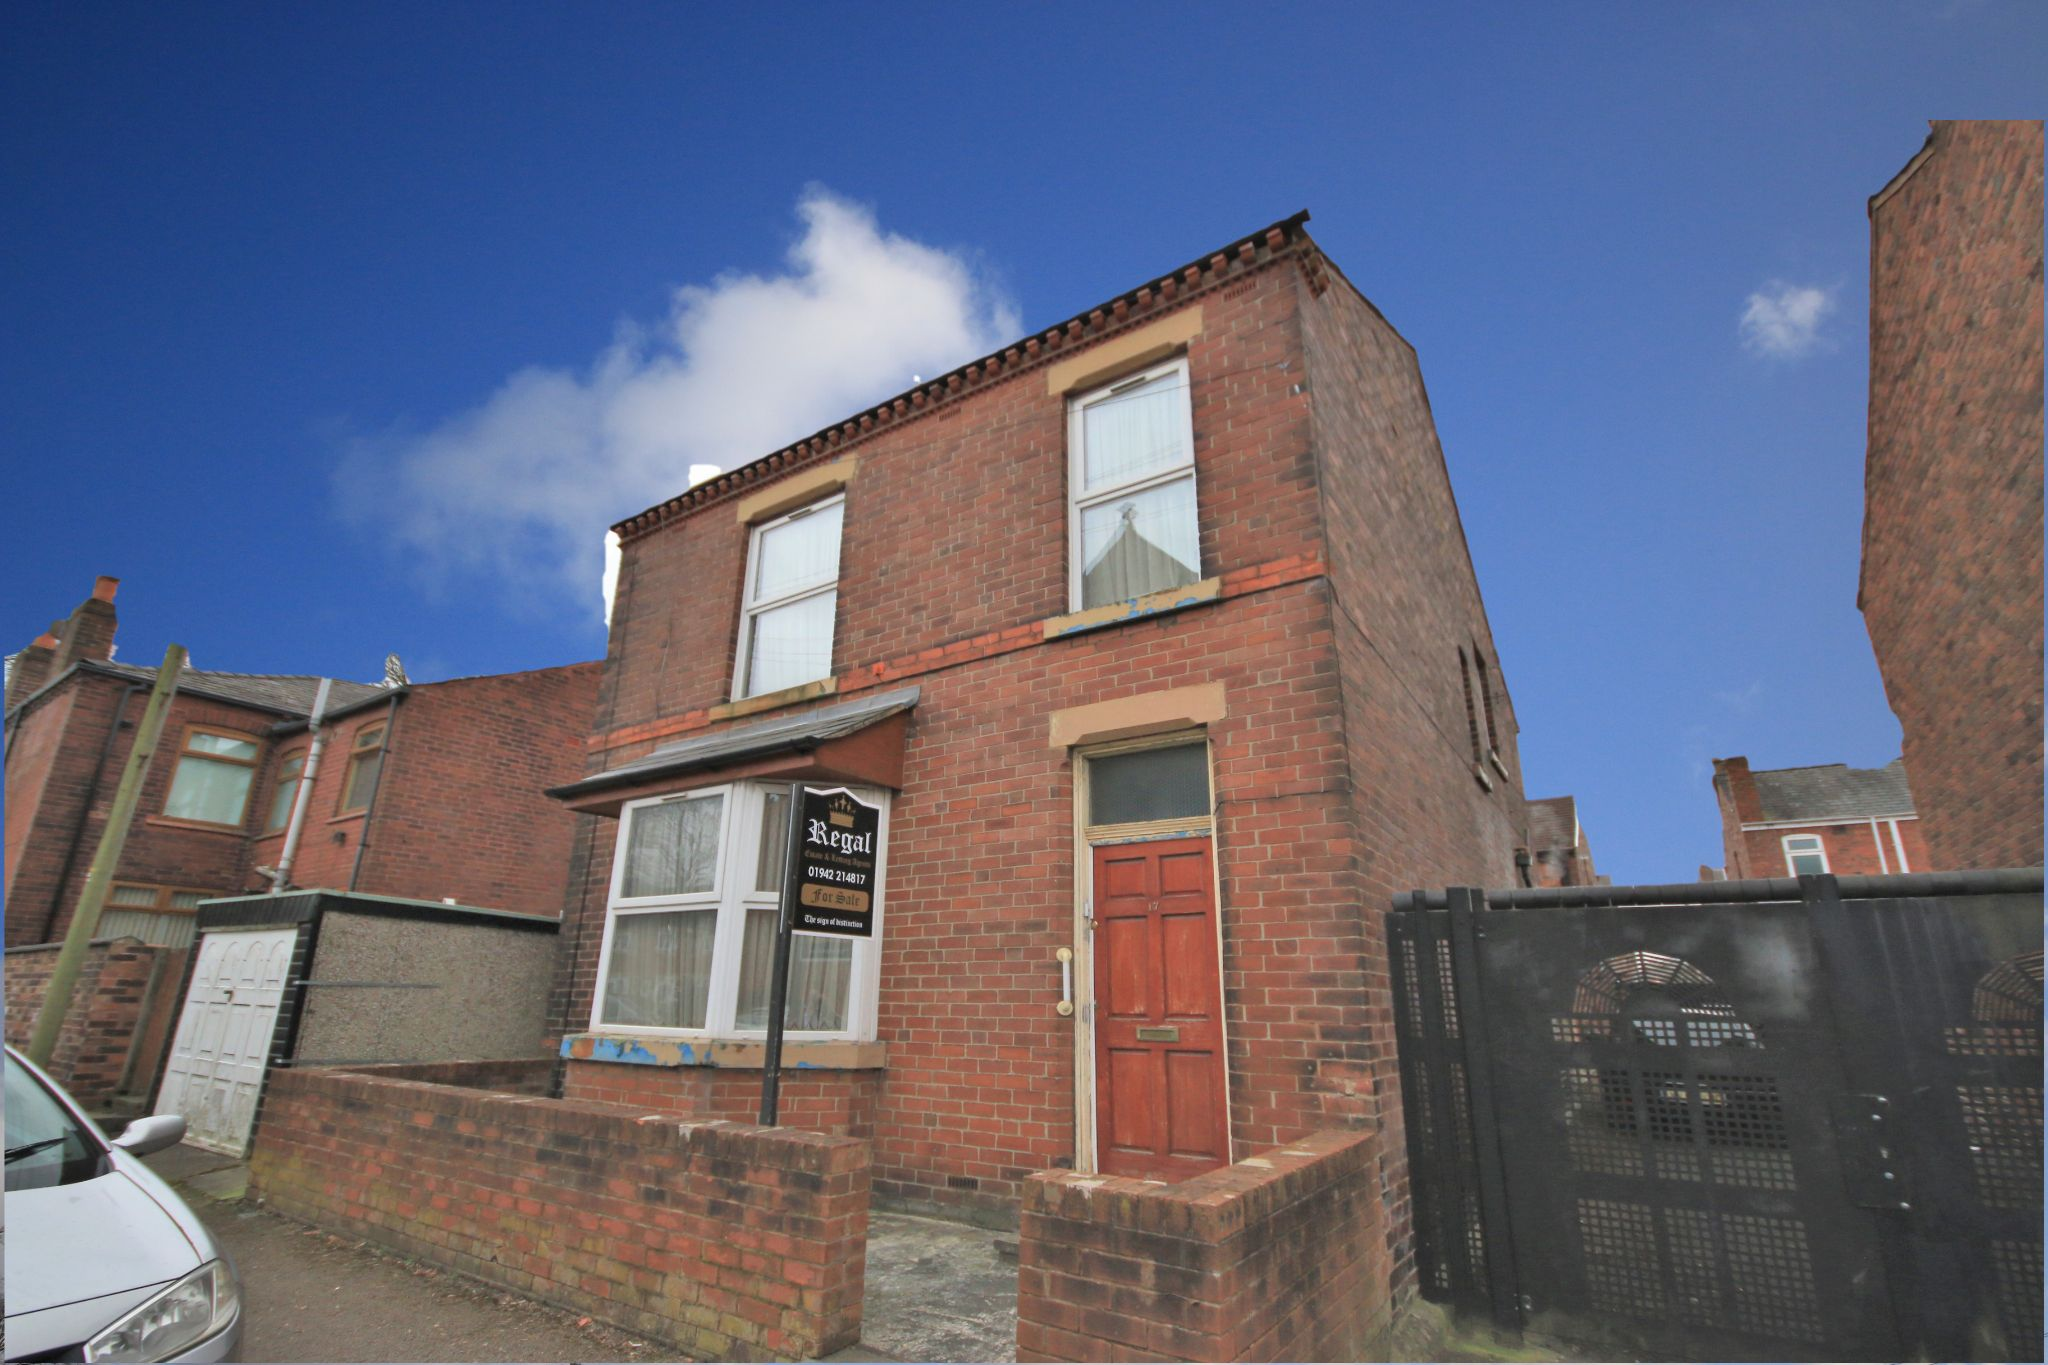 3 bedroom detached house Sold in Wigan - Photograph 1.